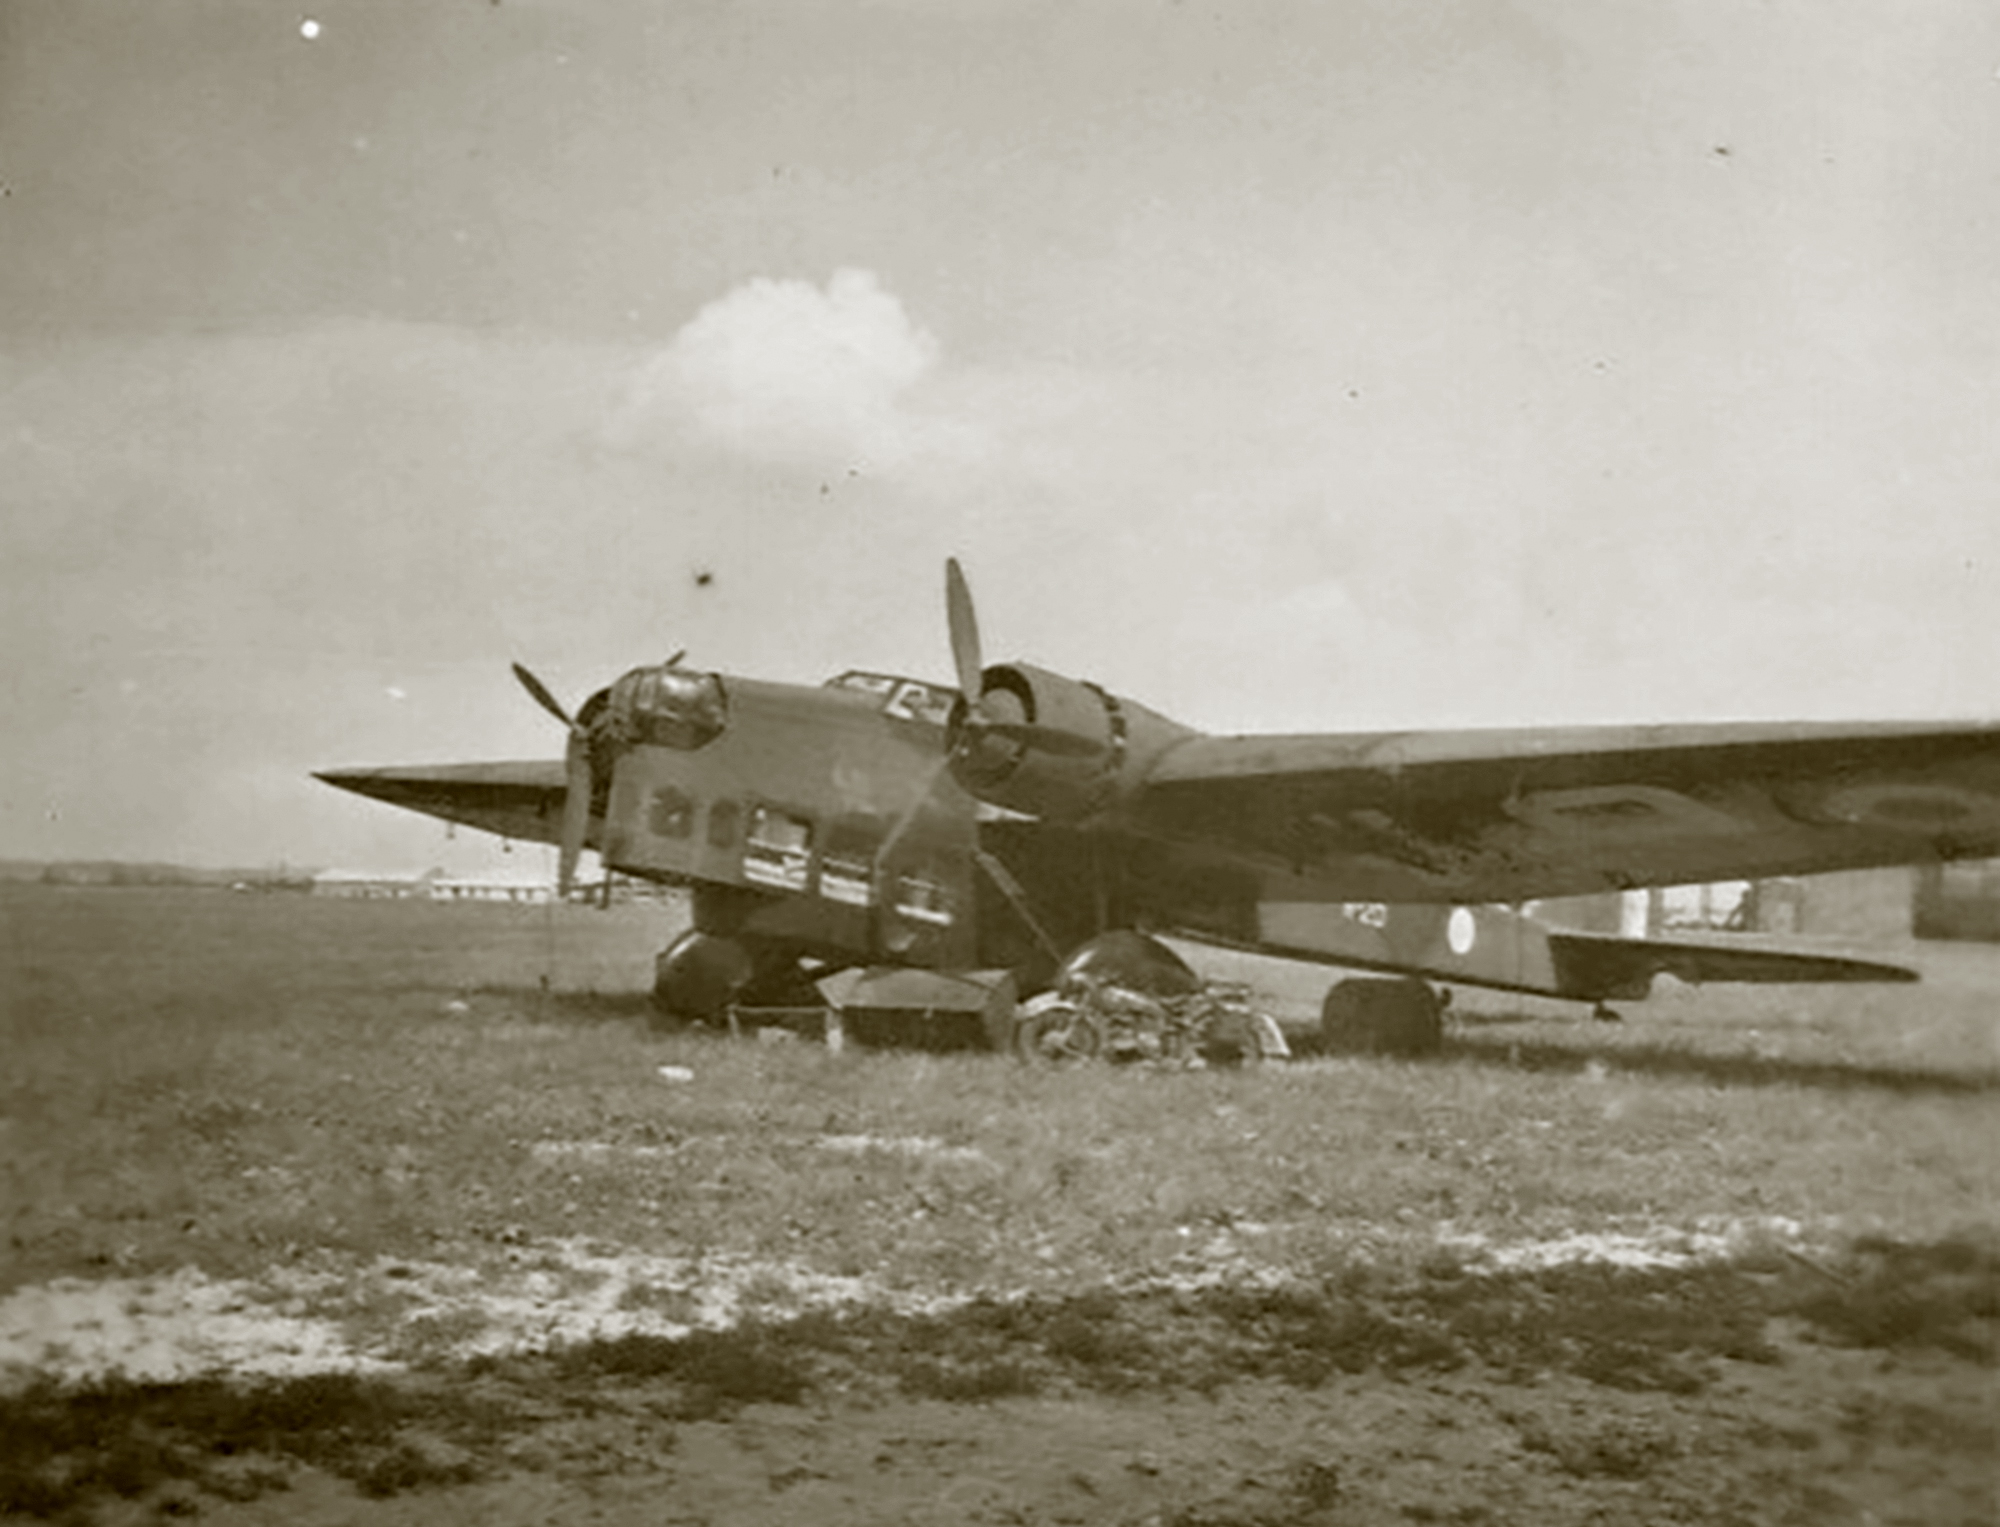 French Airforce Amiot 143 sits abandoned after the fall of France June 1940 ebay 02